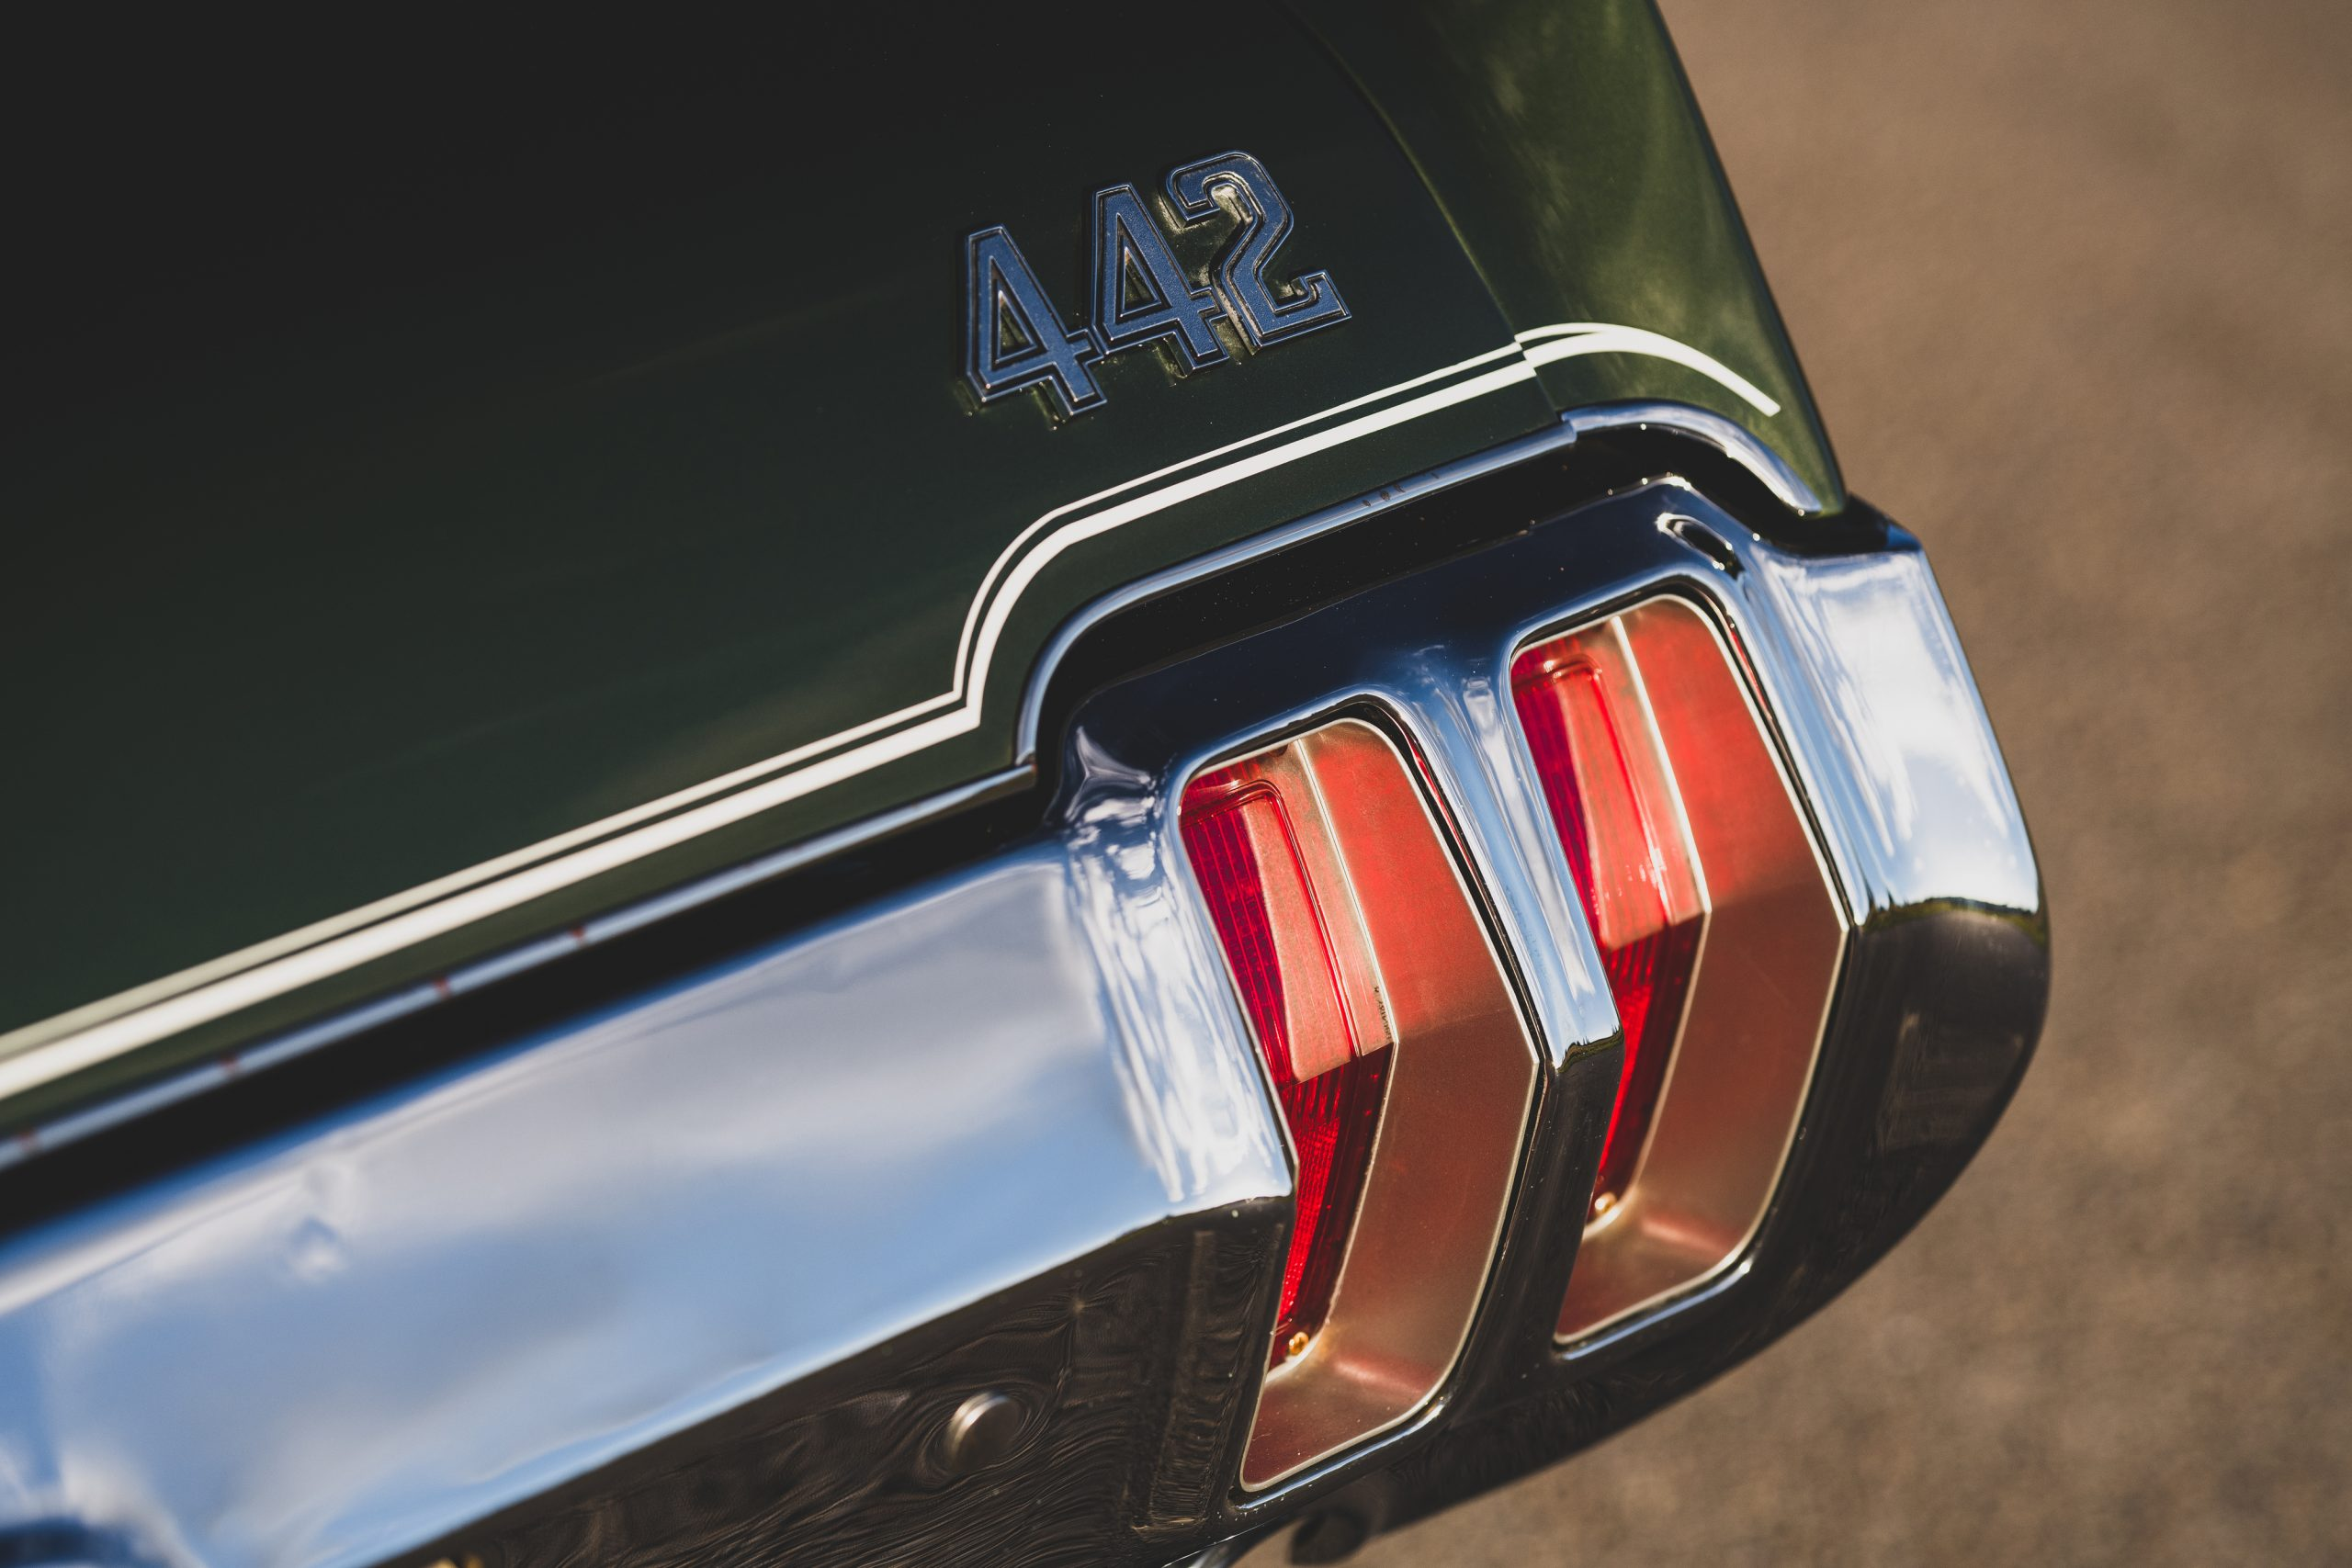 1970 Oldsmobile 442 Convertible Taillight and Badge